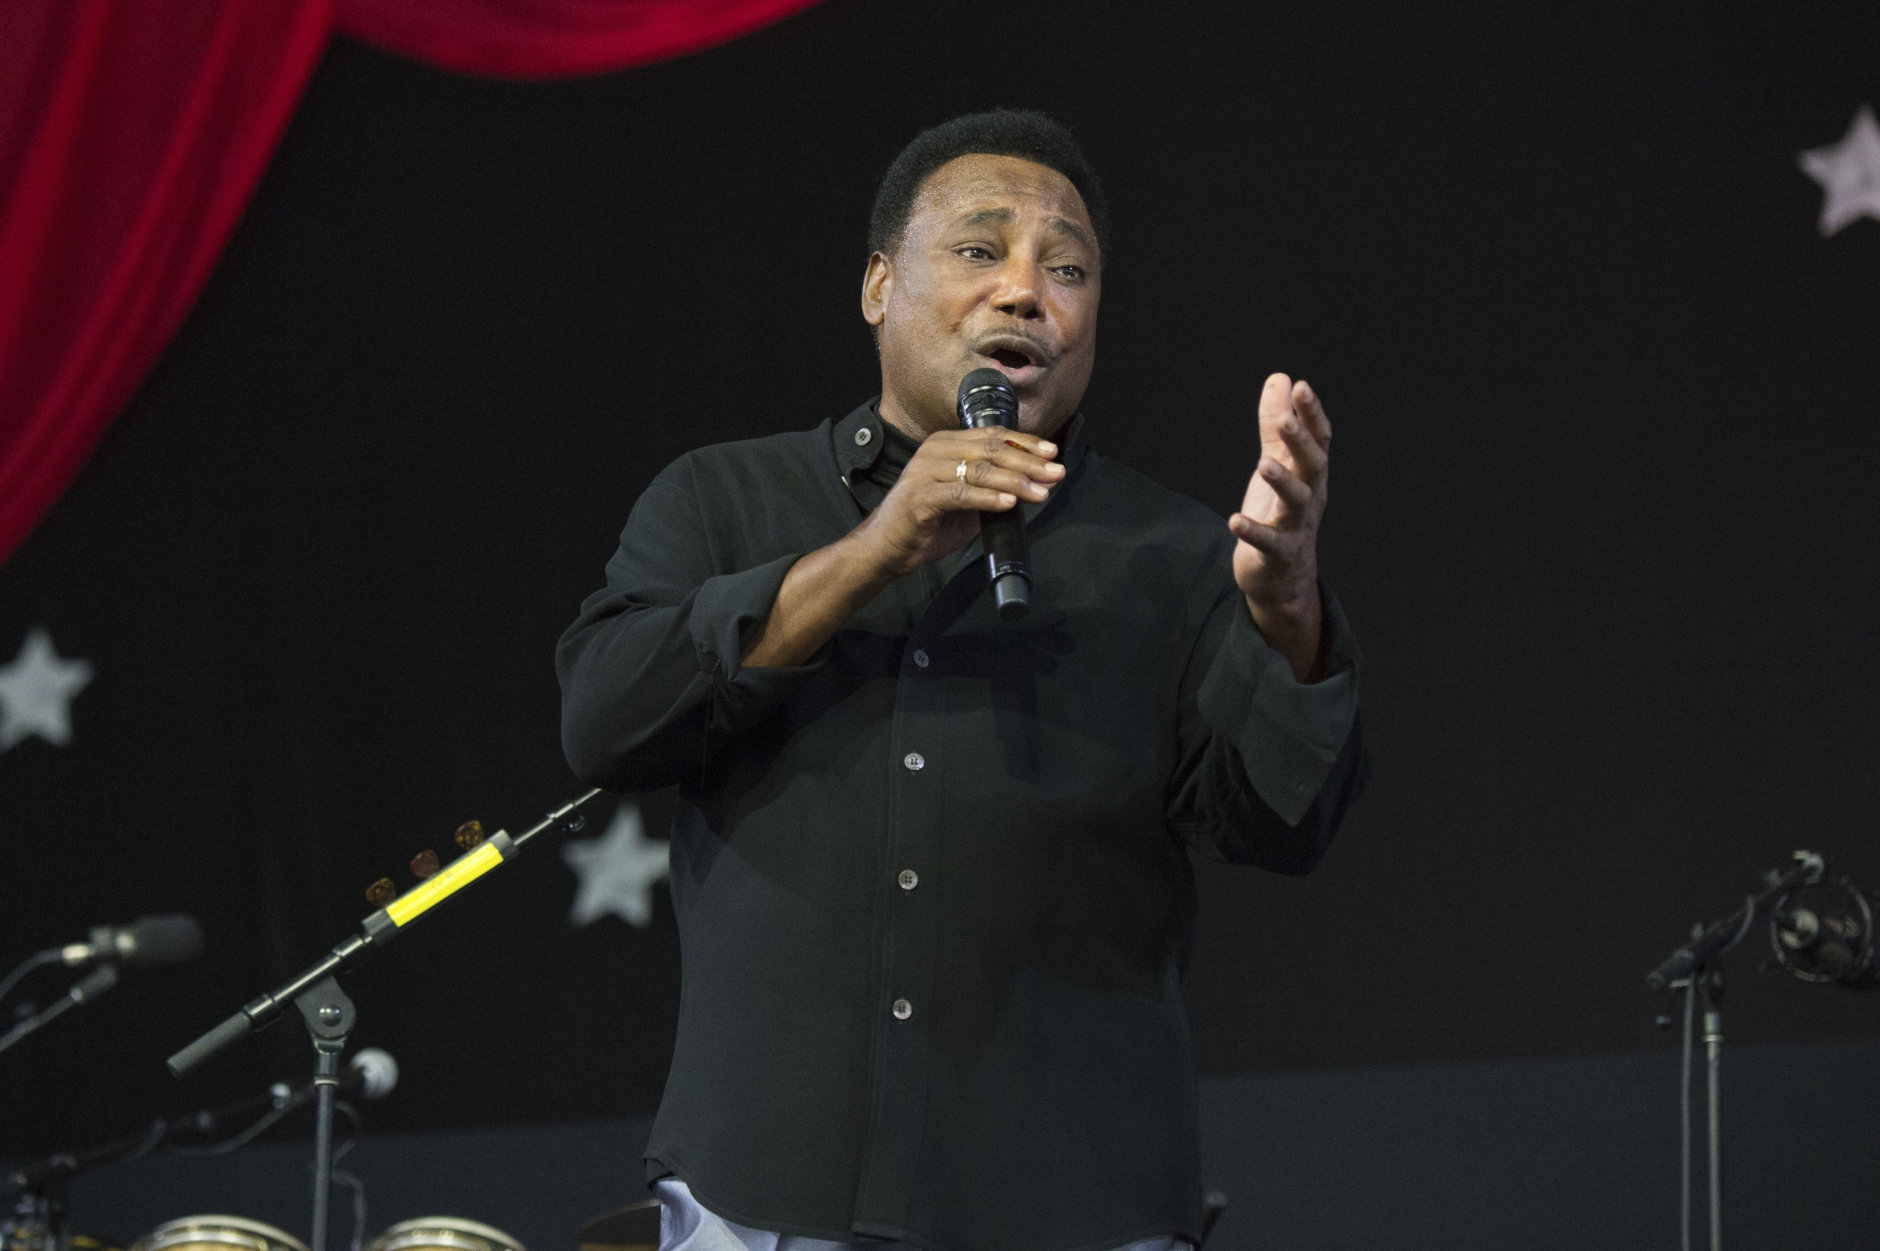 George Benson performs at the New Orleans Jazz and Heritage Festival on Sunday, April 29, 2018, in New Orleans. (Photo by Amy Harris/Invision/AP)